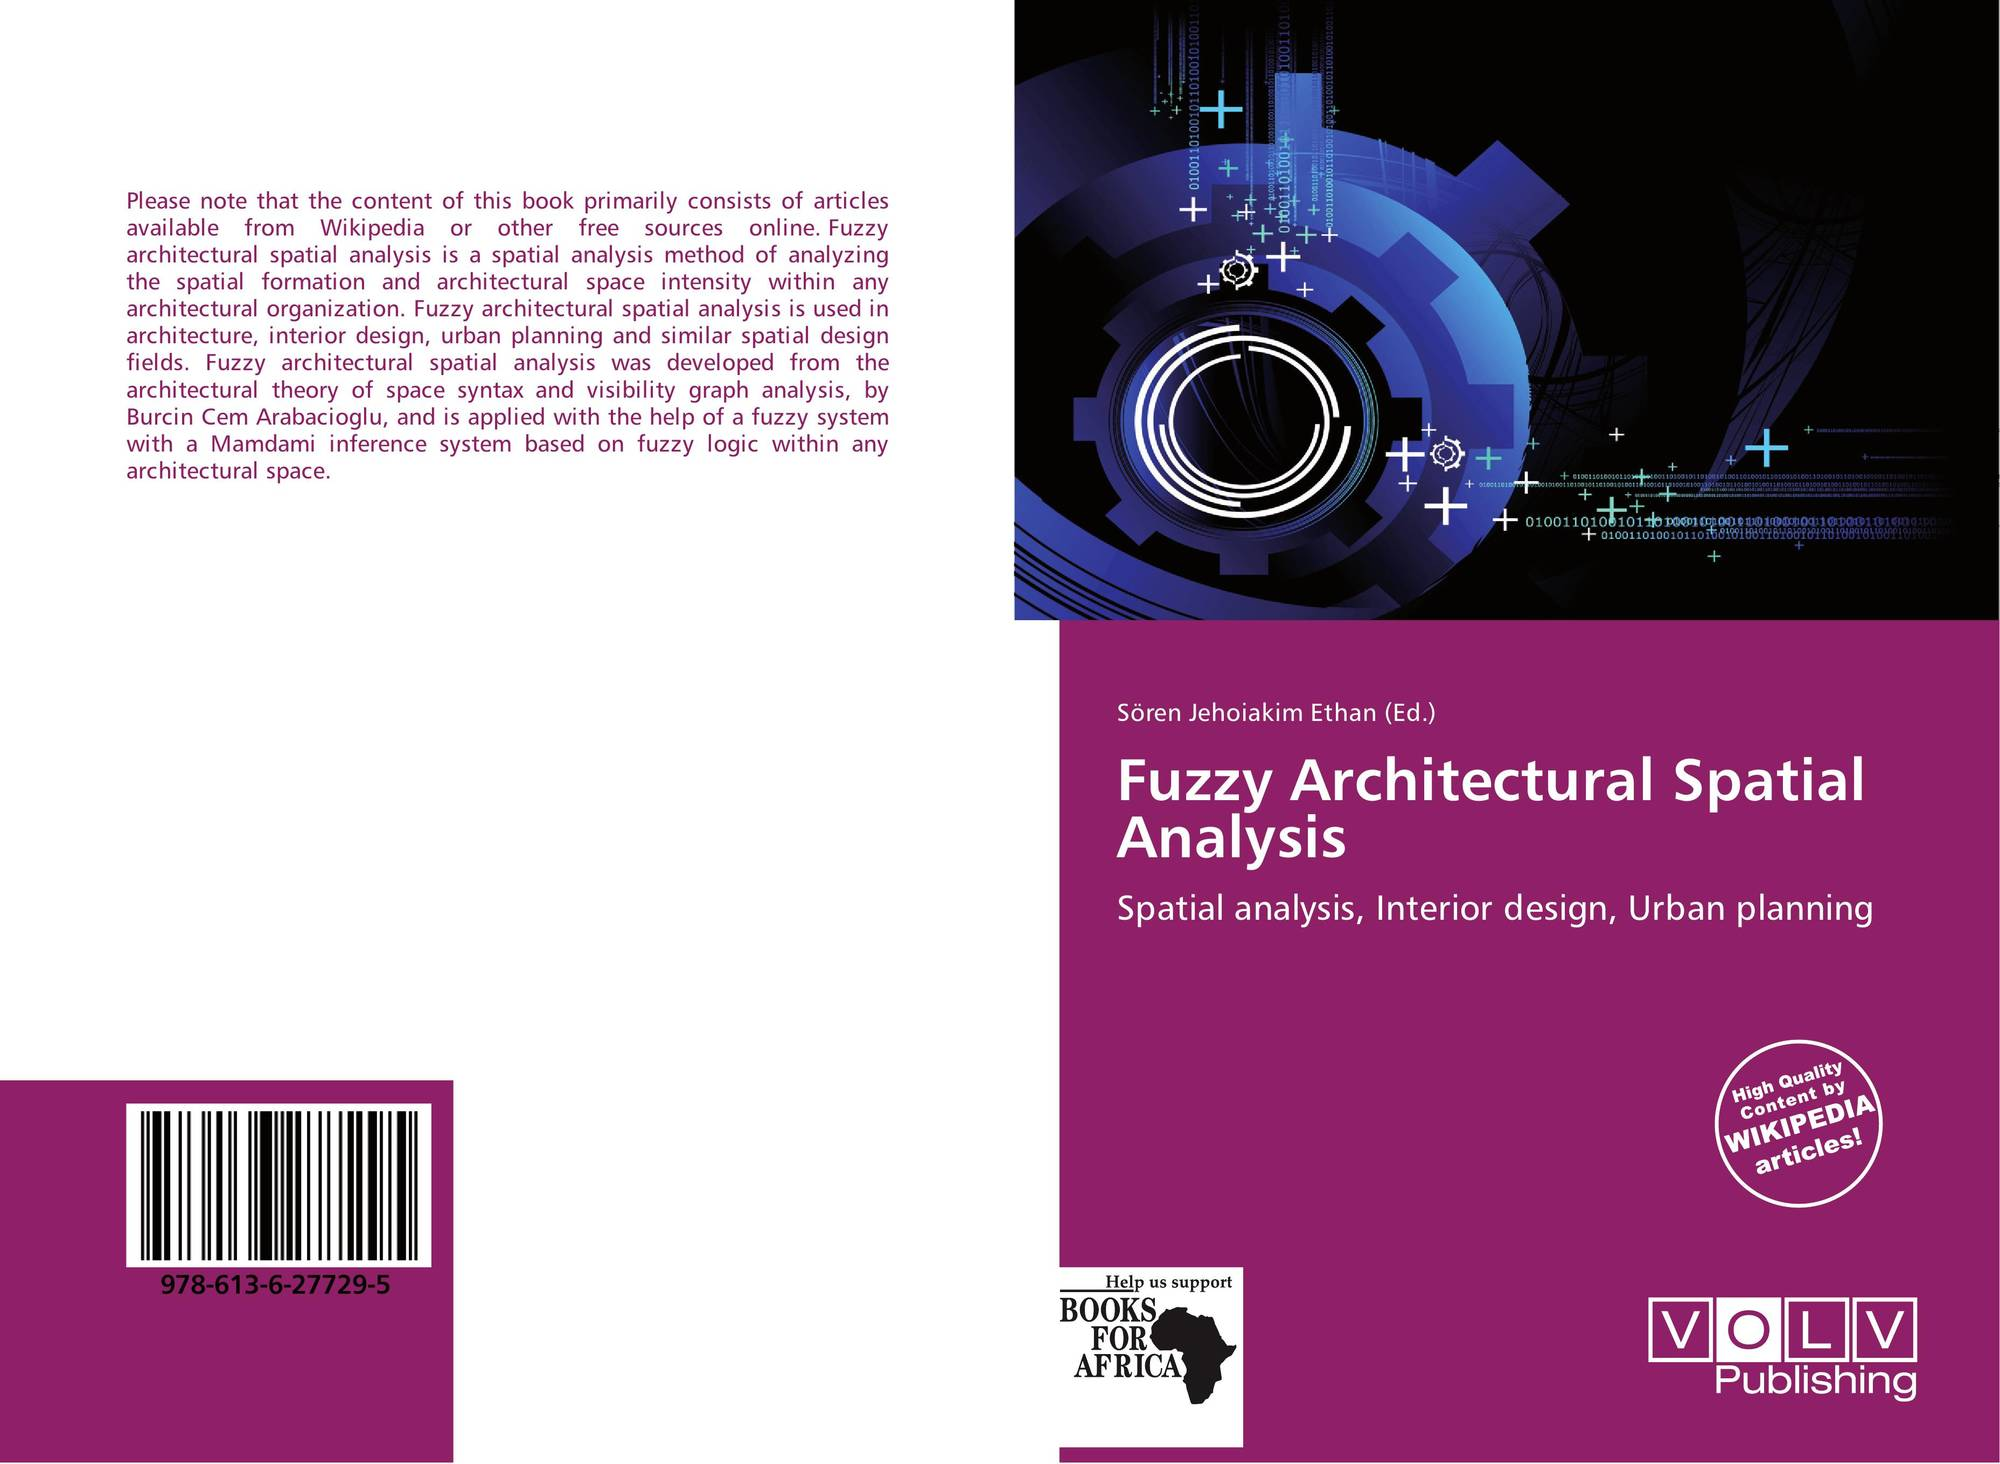 Fuzzy architectural spatial analysis 978 613 6 27729 5 for Spatial analysis architecture